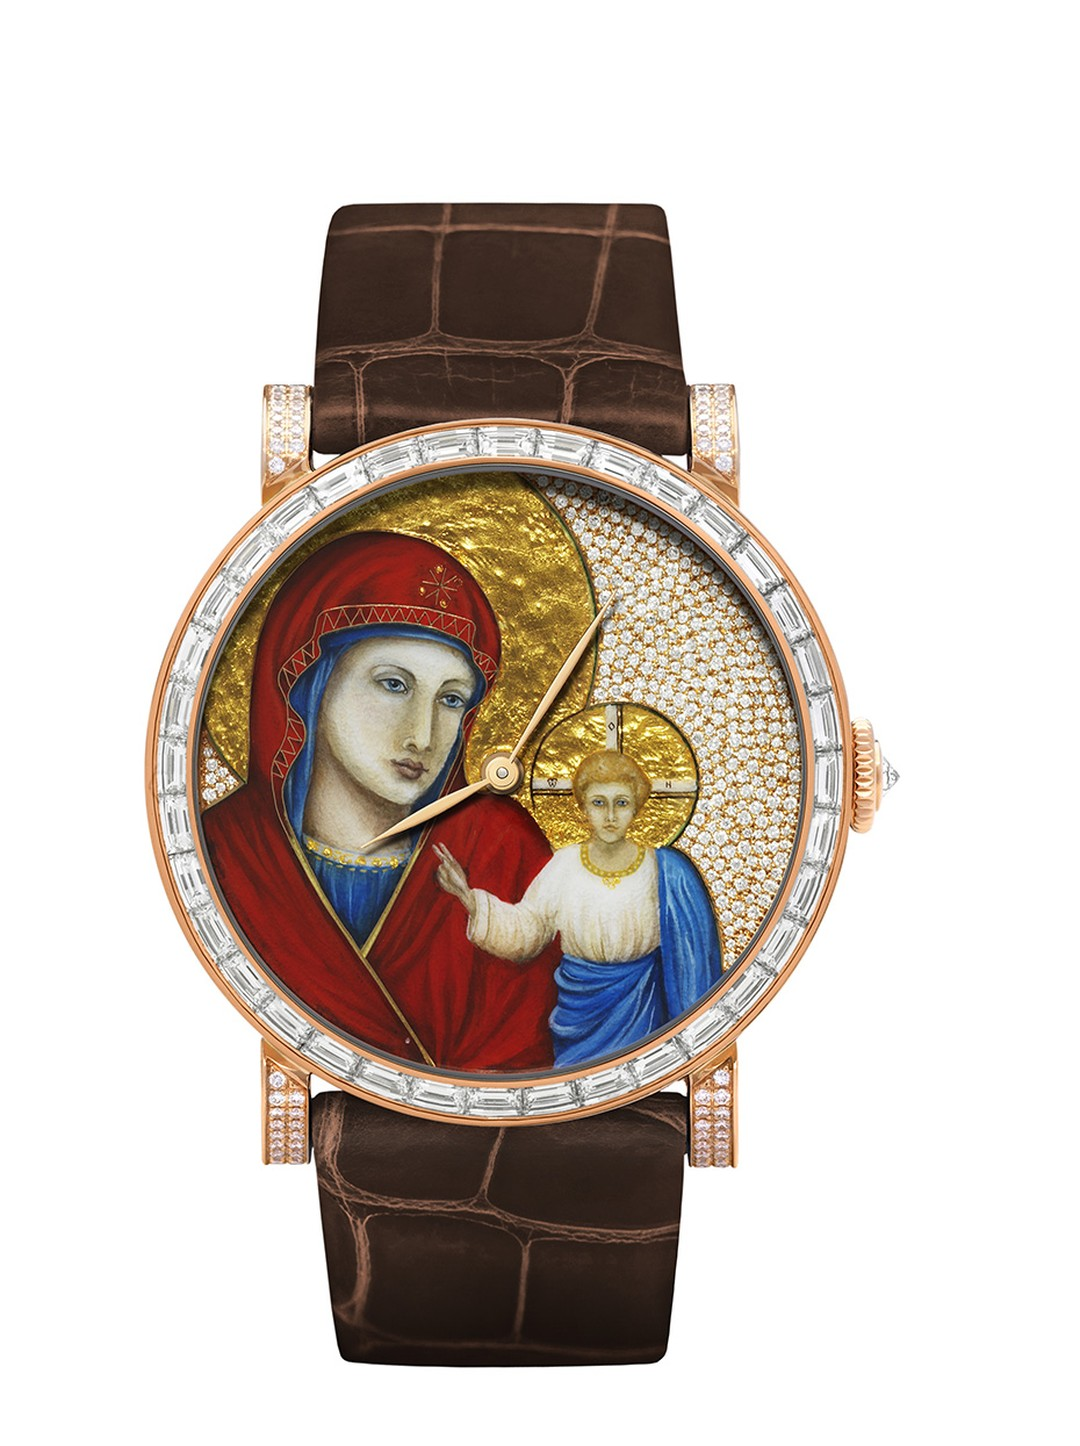 DeLaneau Rondo Icon watch featuring a case with 36 baguette-cut diamonds and 288 brilliant-cut diamonds